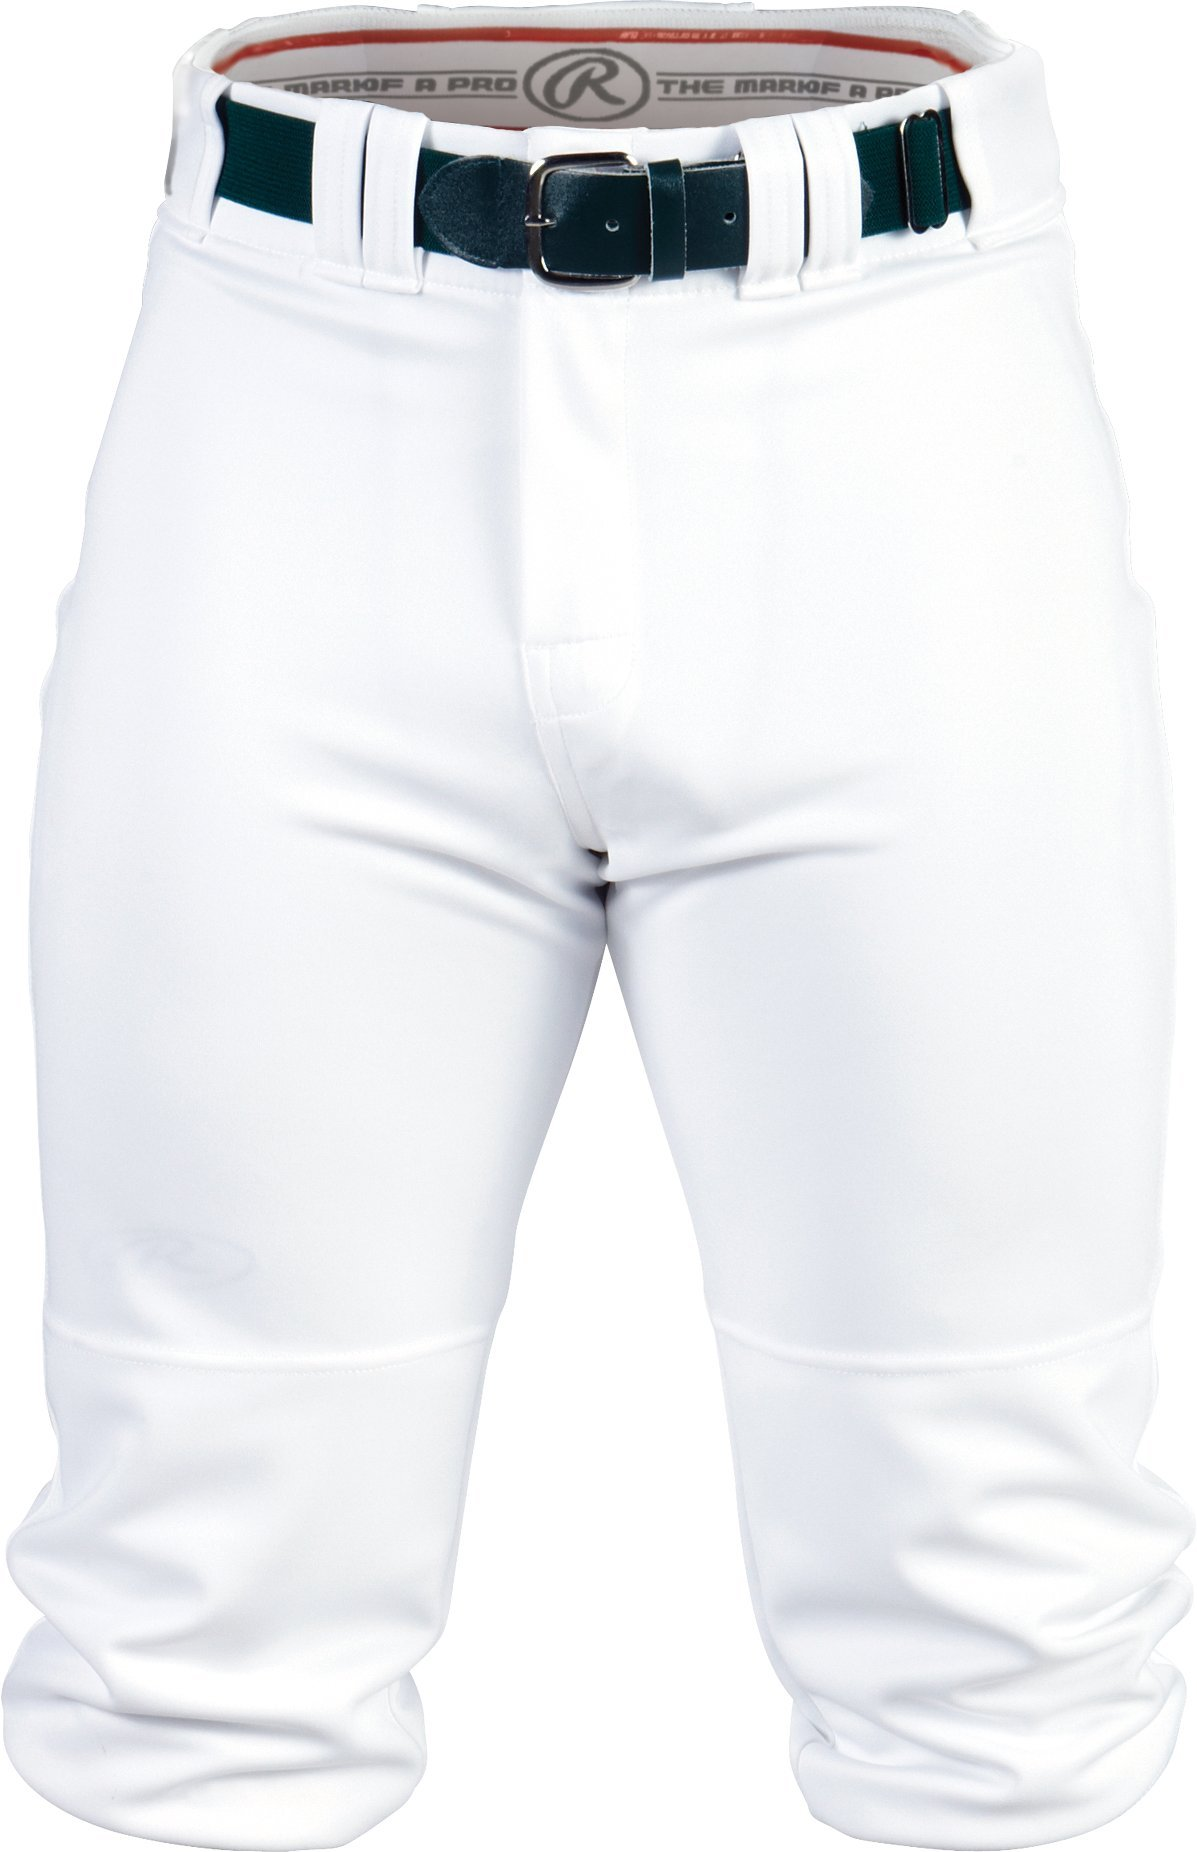 Rawlings Youth Knee-High Pants, 2X, White